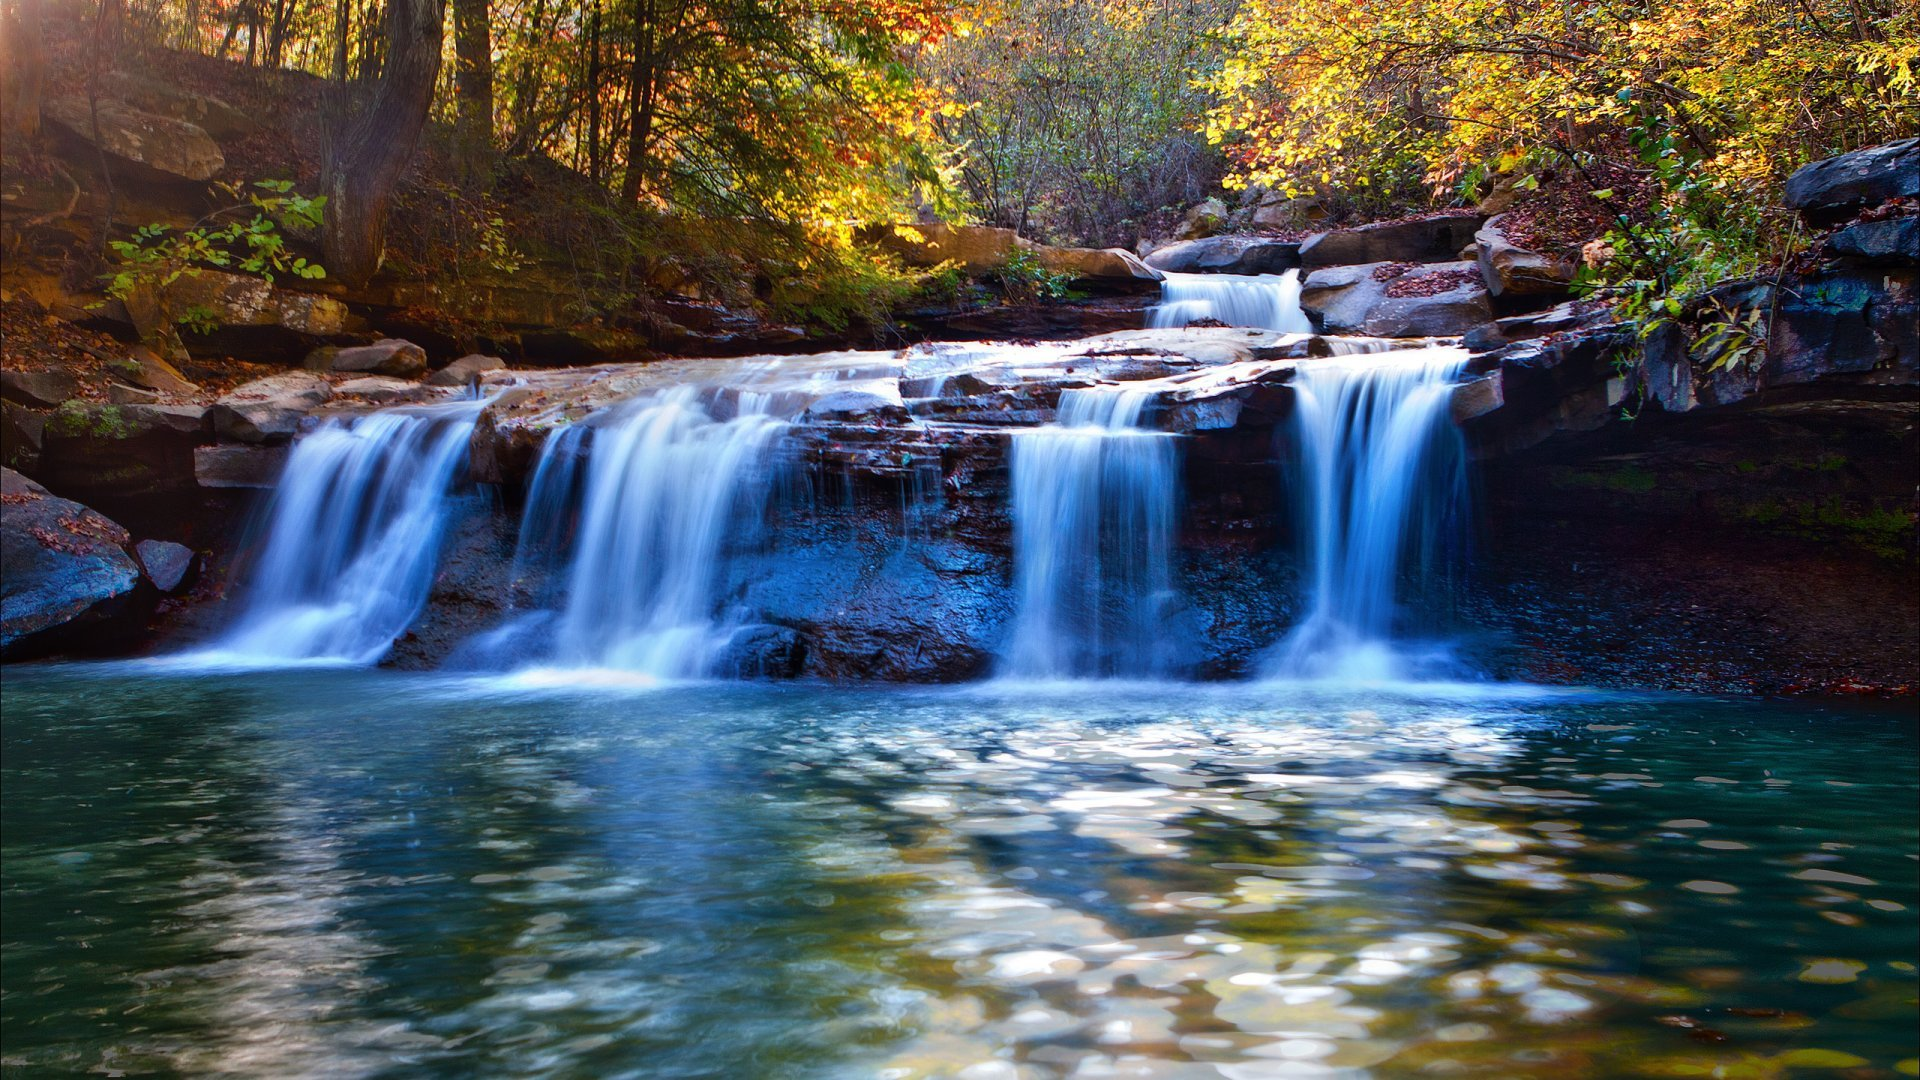 Waterfall Autumn   Most Beautiful Waterfall Wallpapers for Desktop 1920x1080